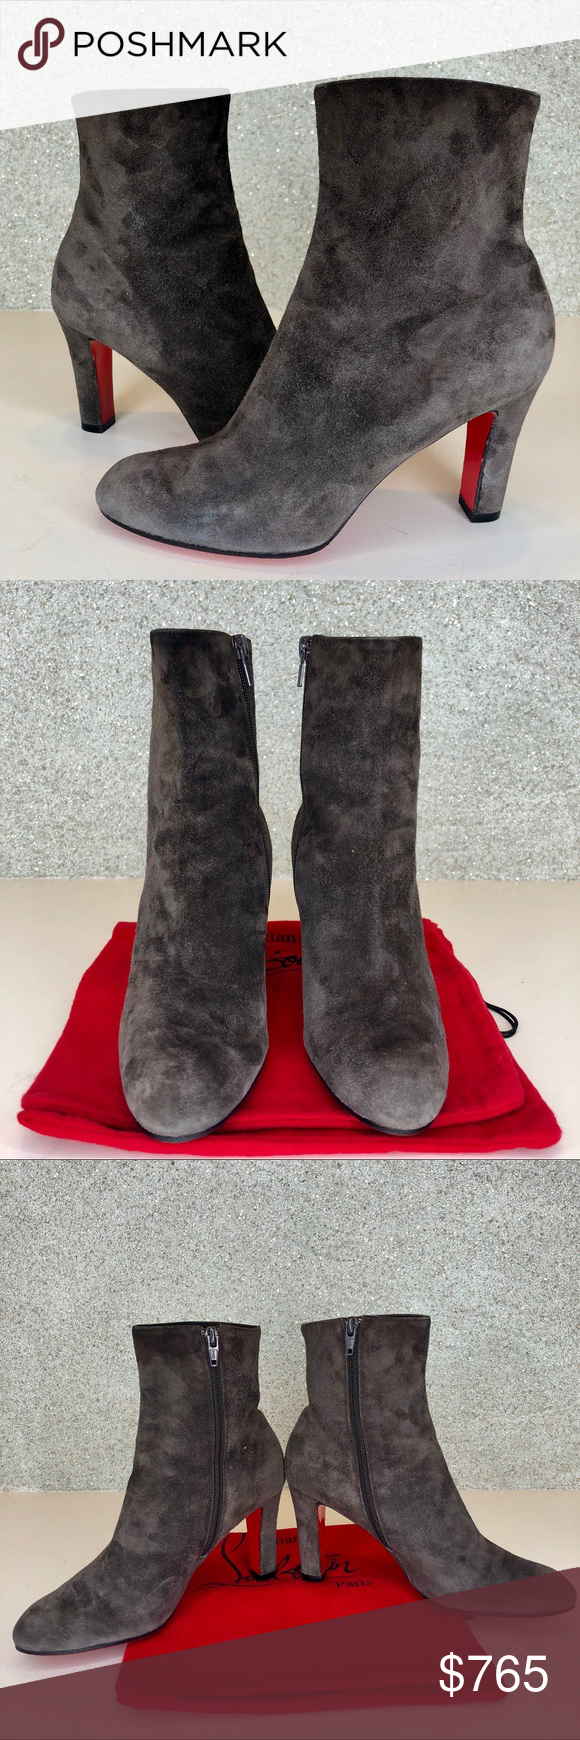 57584f2b8a8a Louboutin Top 70 Charcoal Grey Suede ankle boots Christian Louboutin suede  ankle boot. Approx.